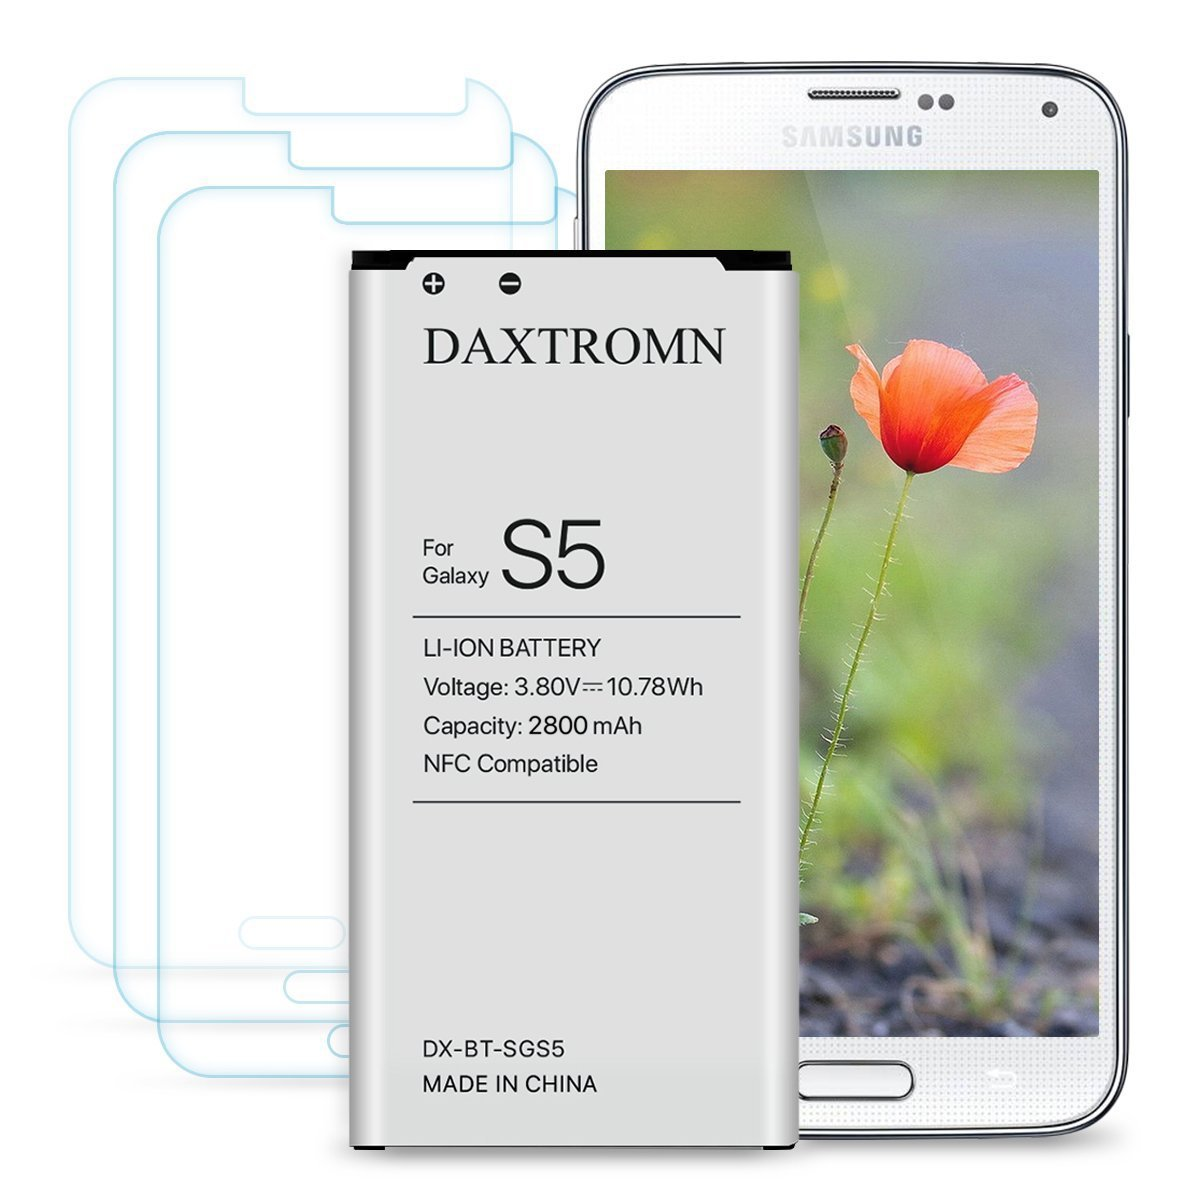 N910P with Screen Protector N910U 4G LTE Note 4 Battery NFC//Google Wallet Capable N910T DAXTROMN 3220 mAh Replacement Battery for Samsung Galaxy Note 4 N910 N910V N910A